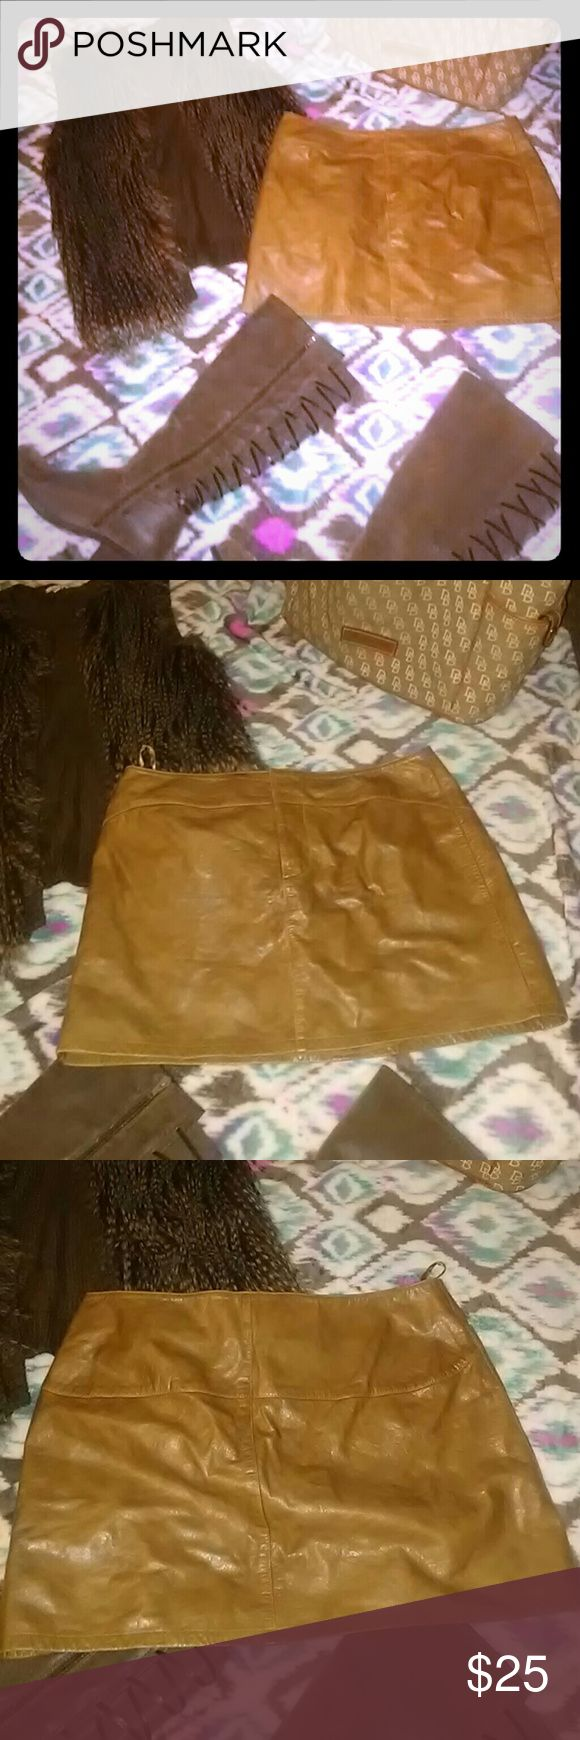 Mini leather gap skirt worn leather look size 14 Mini skirt gently worn, goes great with boots GAP Skirts Mini